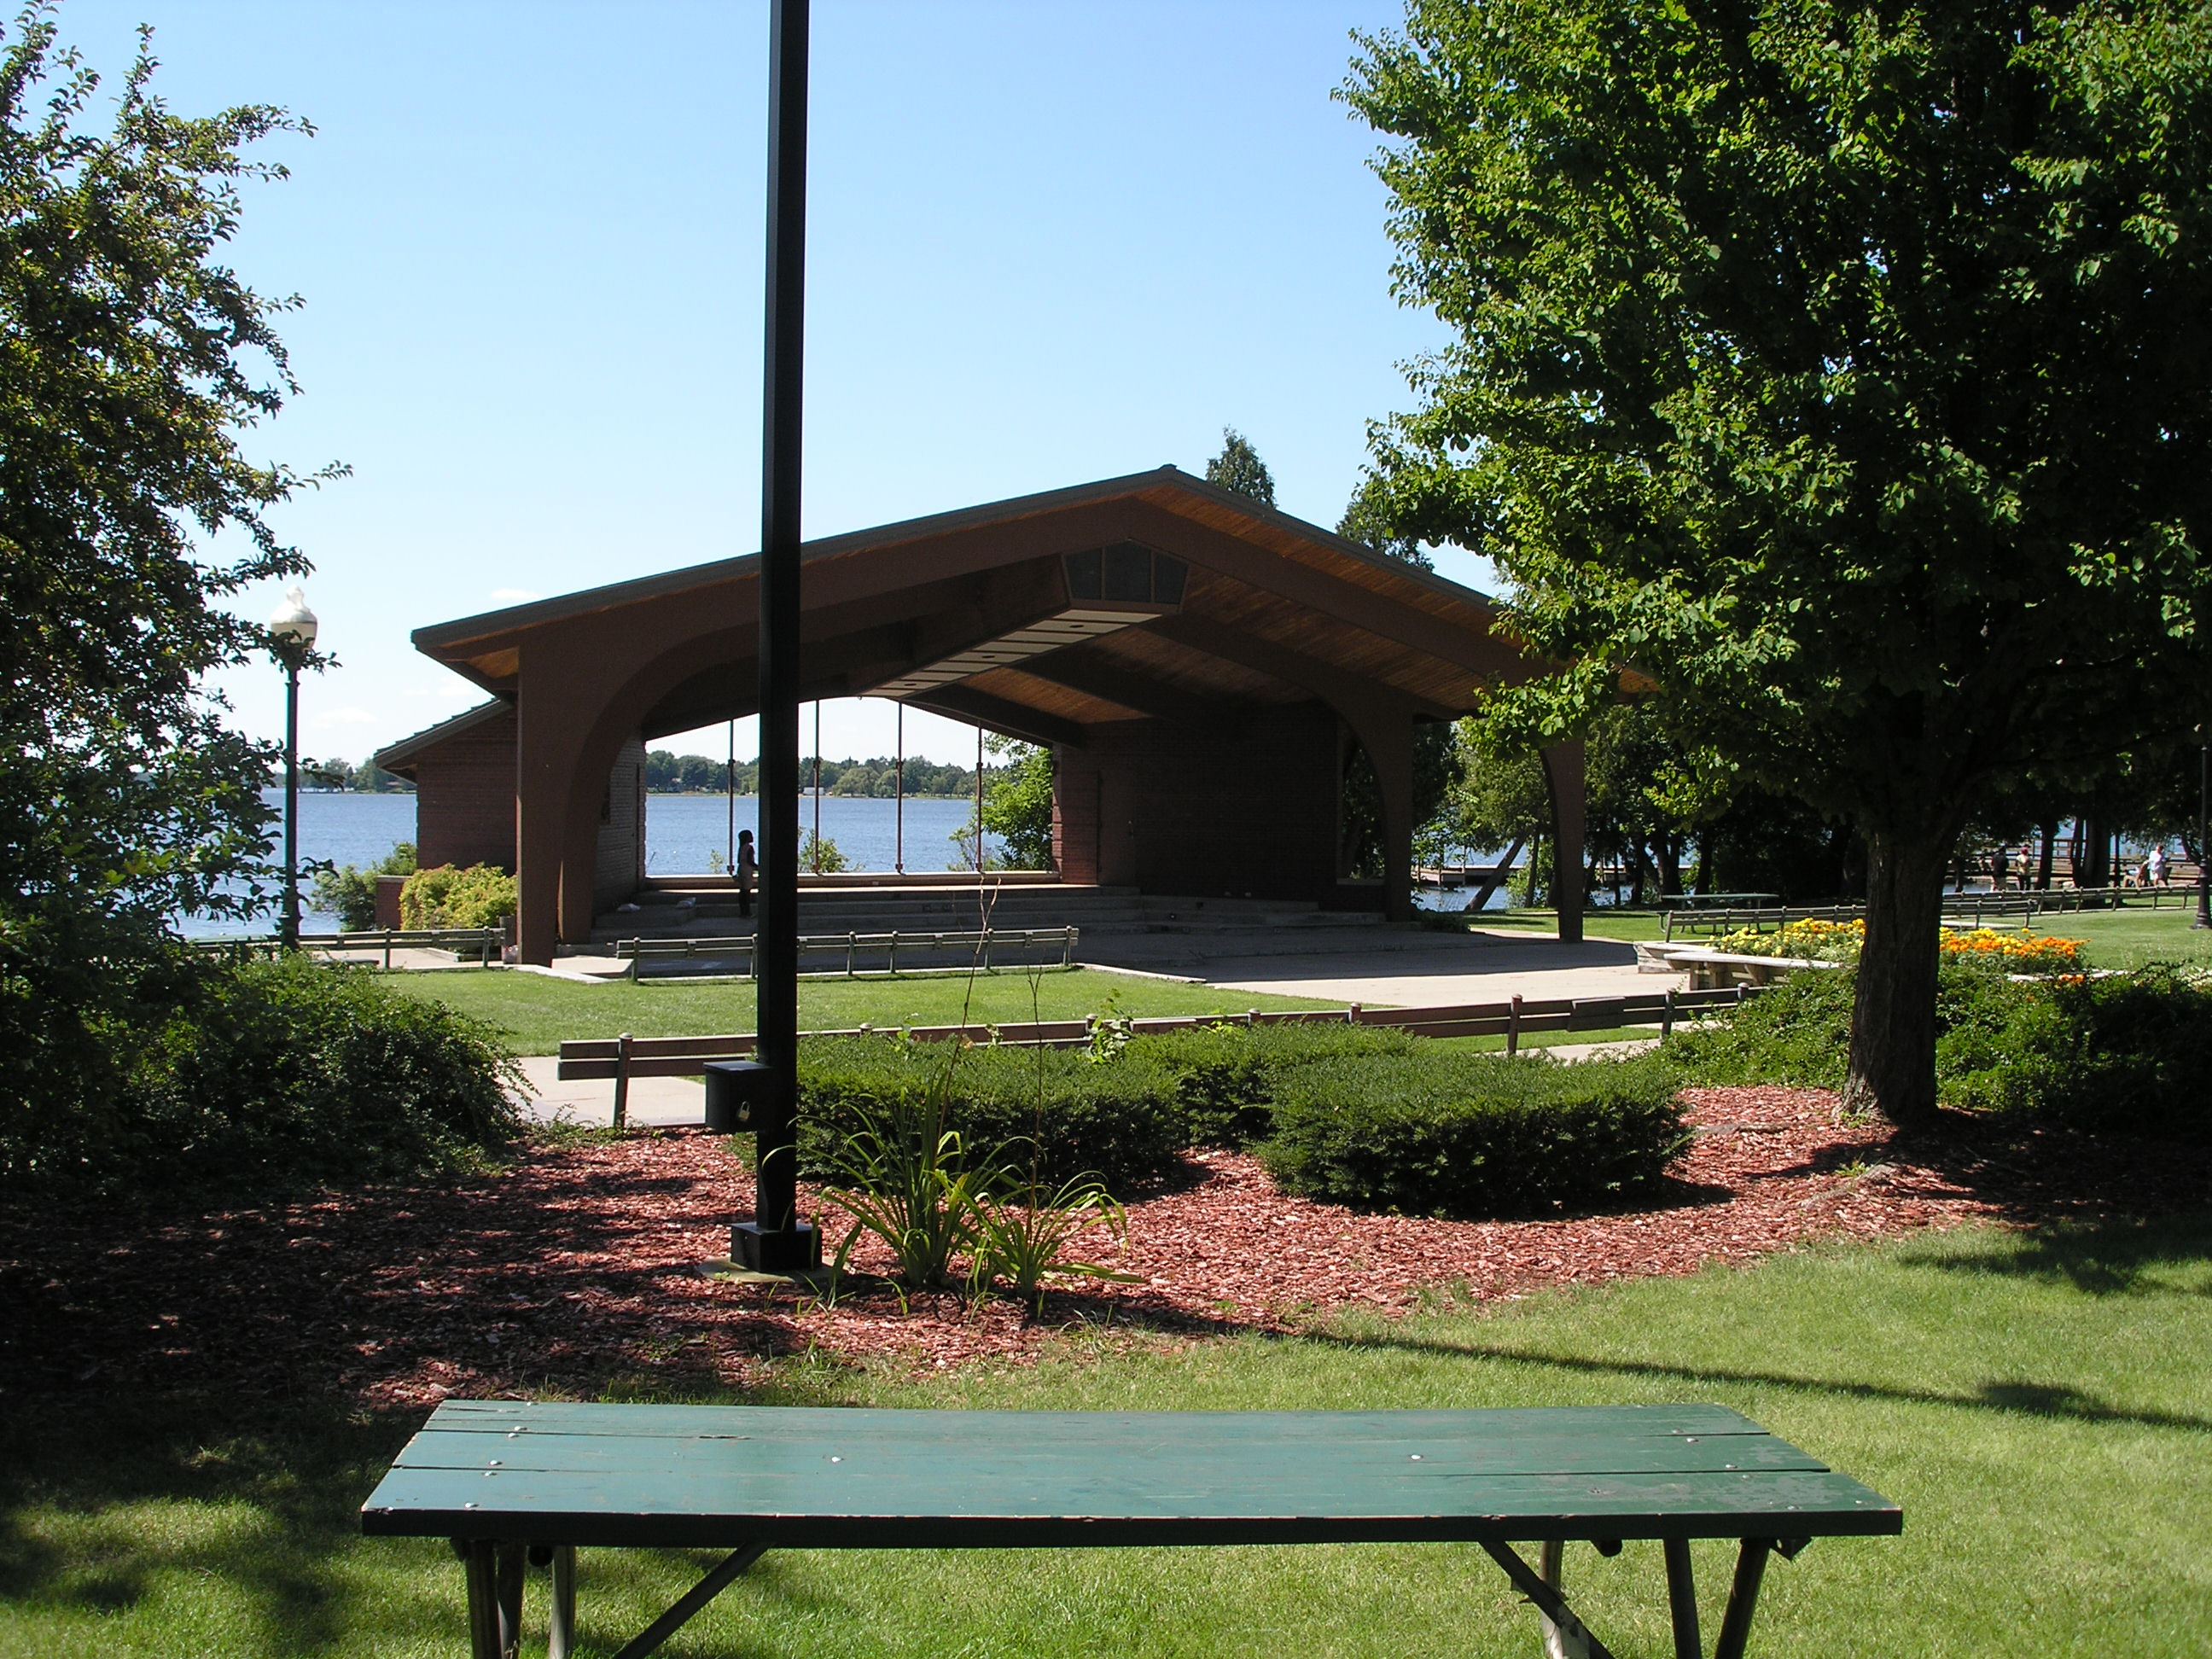 Picnic Tables and Shelter